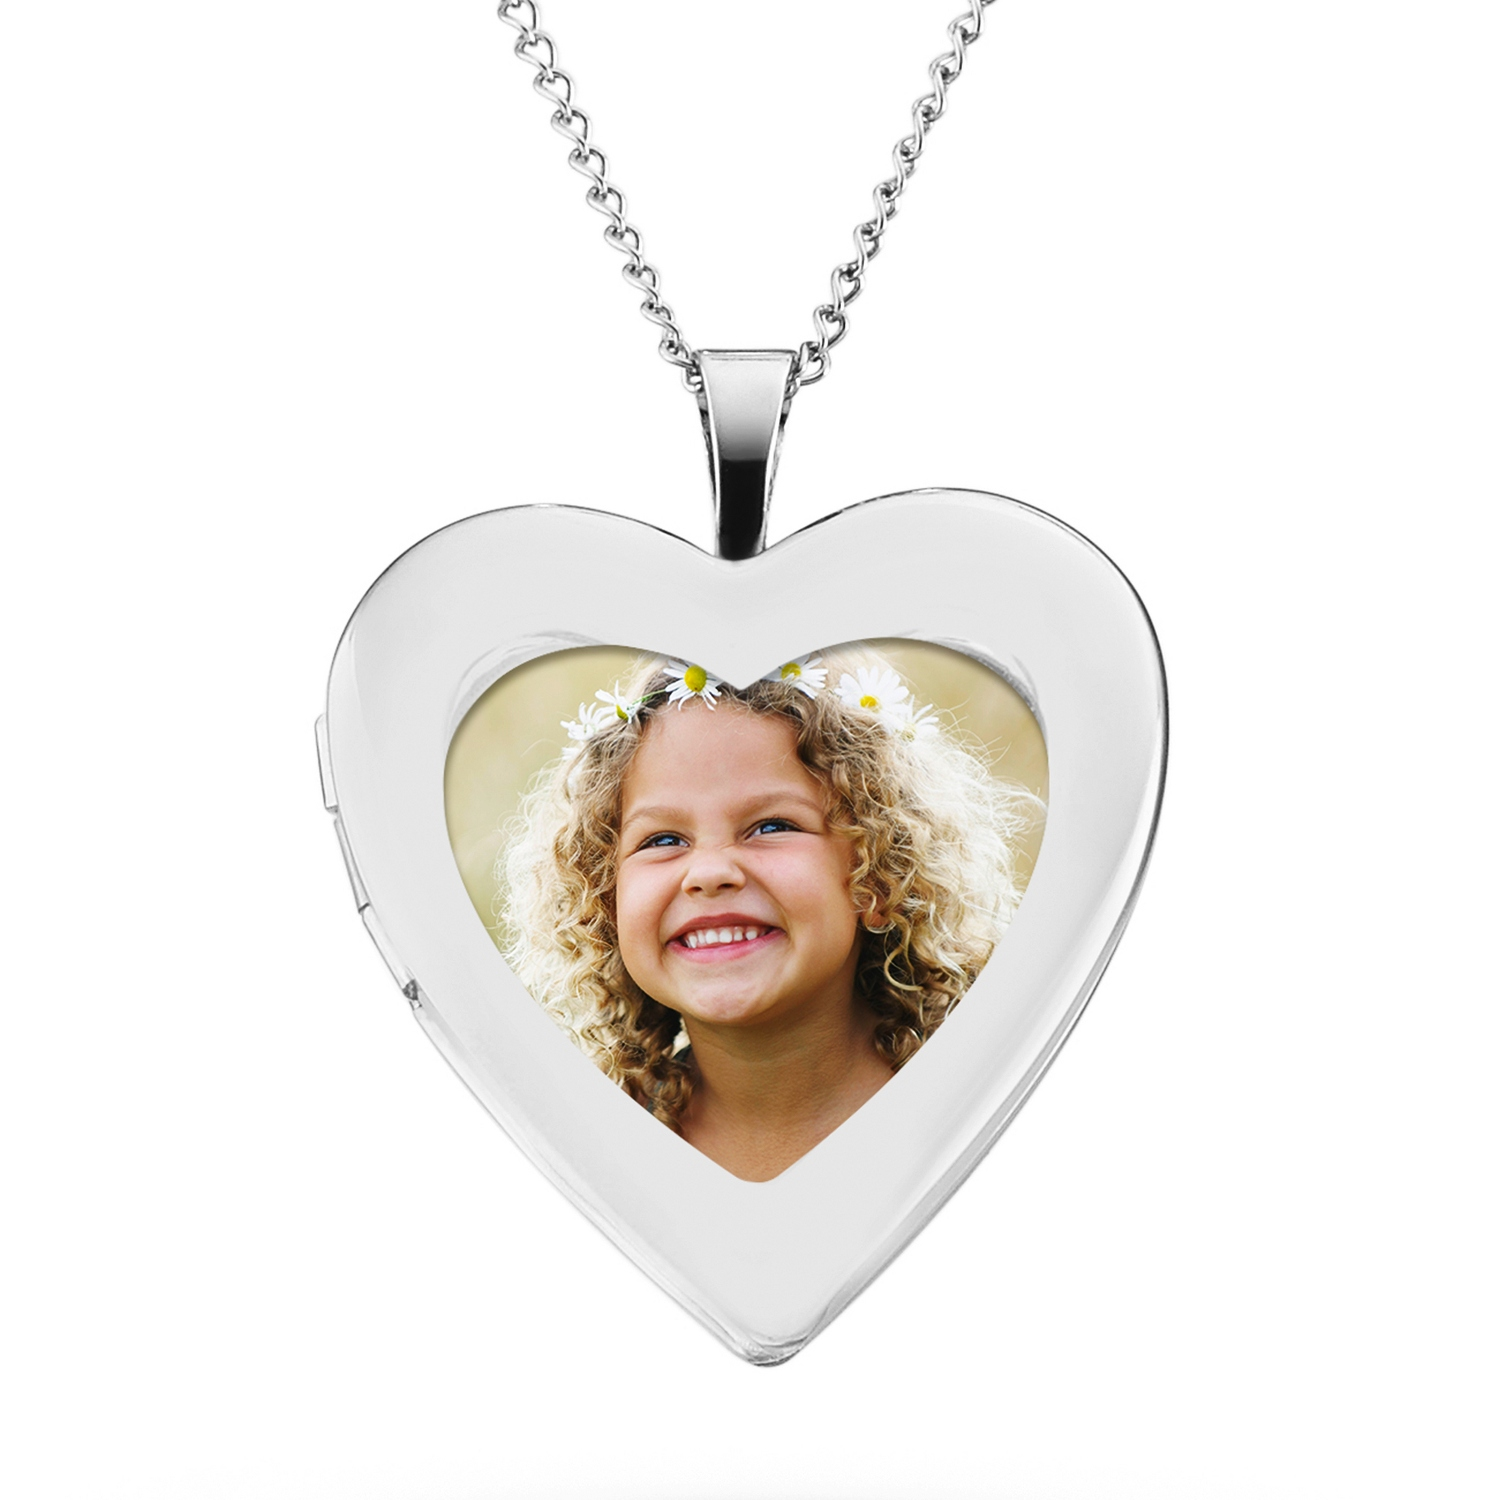 dp pendant open amazon necklace filled kids childrens lockets s gold com yellow locket heart children jewelry